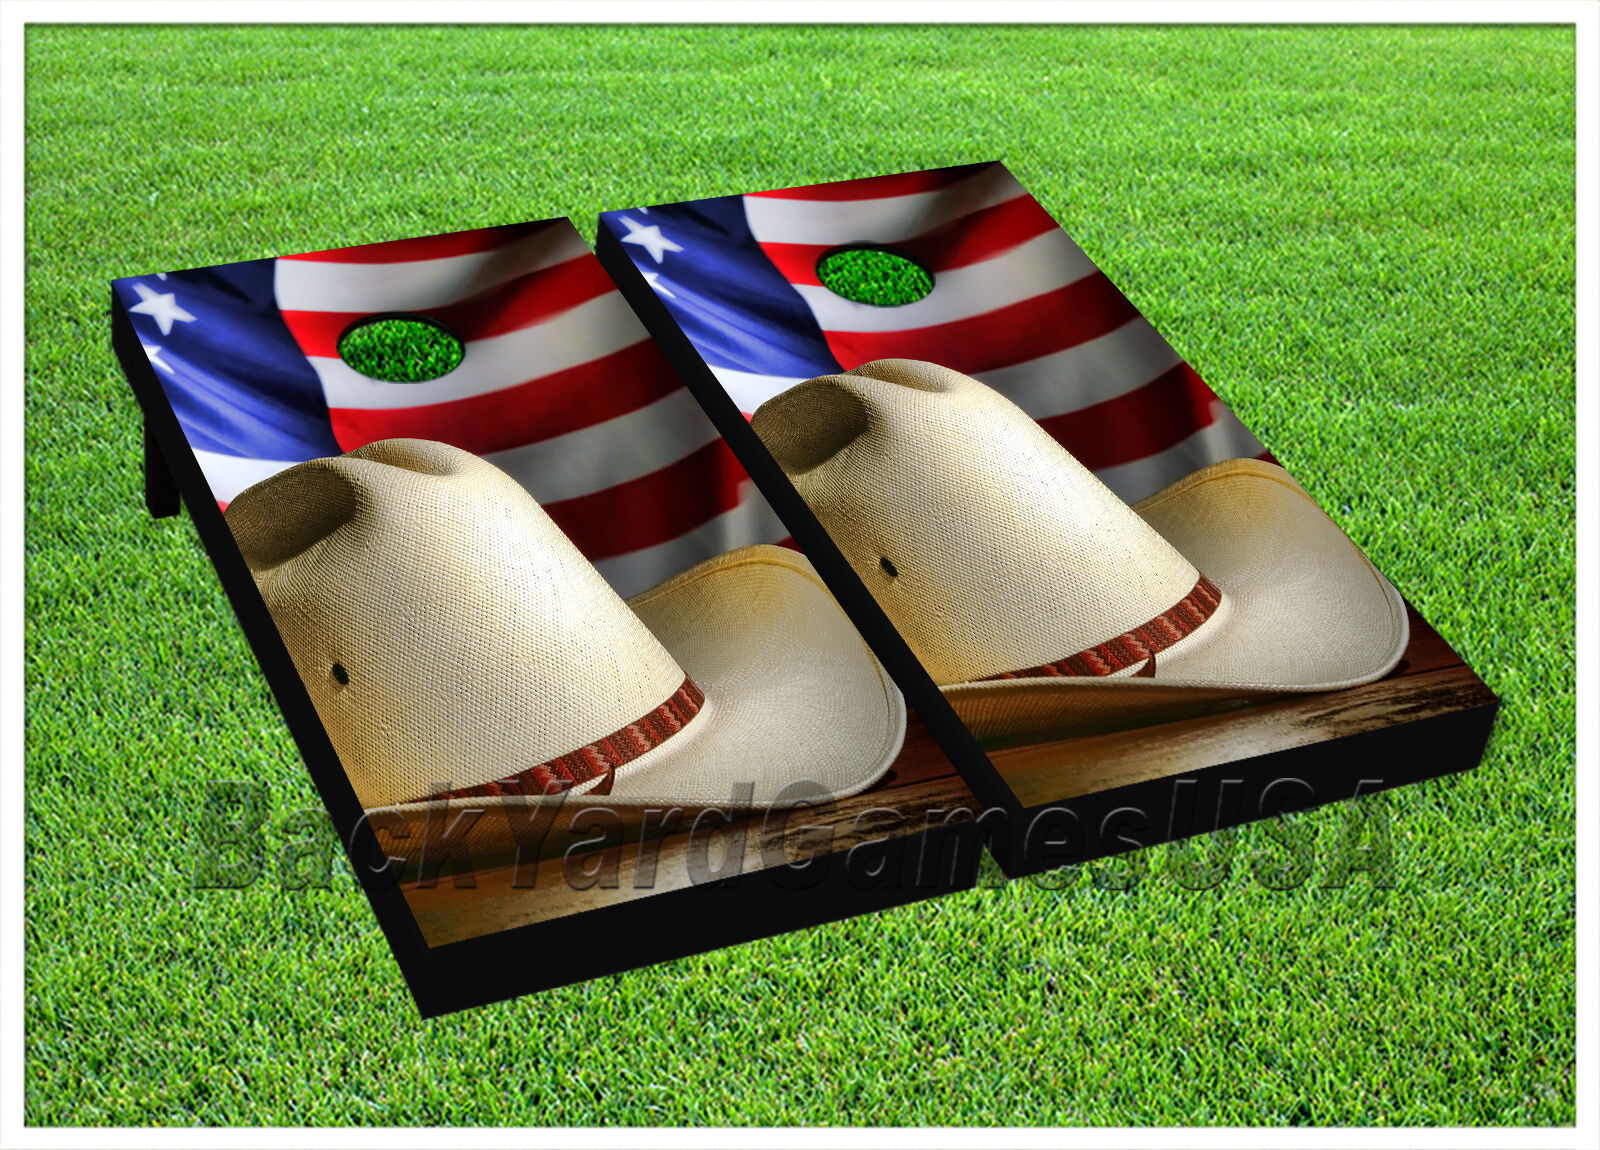 CORNHOLE BEANBAG TOSS  GAME w Bags Game Board America USA Cowboy Red bluee Set 732  free shipping